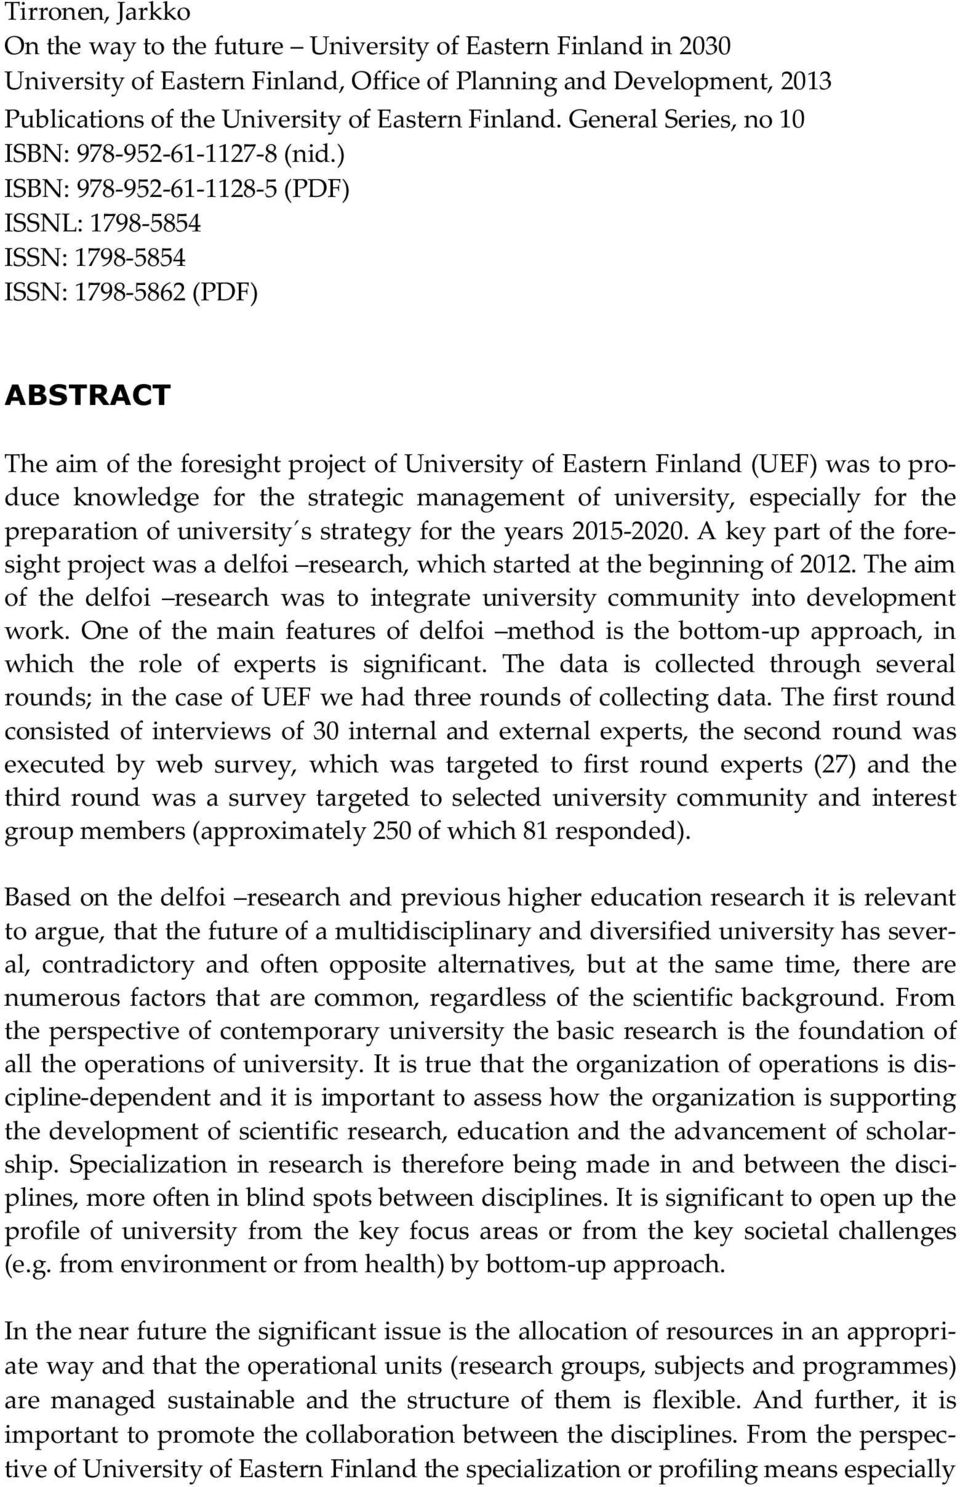 ) ISBN: 978-952-61-1128-5 (PDF) ISSNL: 1798-5854 ISSN: 1798-5854 ISSN: 1798-5862 (PDF) ABSTRACT The aim of the foresight project of University of Eastern Finland (UEF) was to produce knowledge for